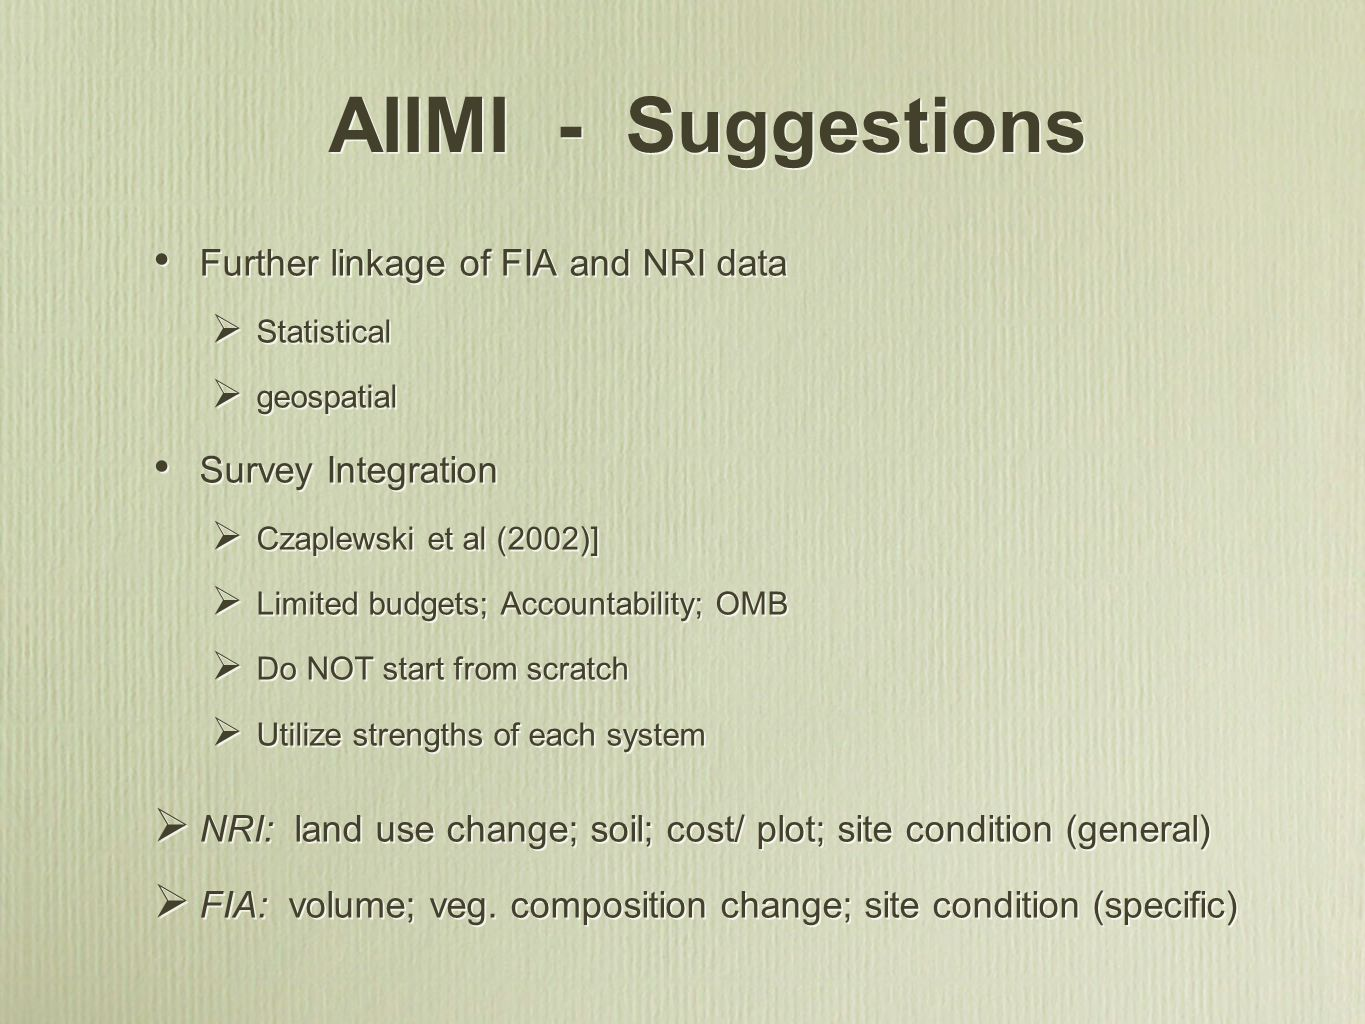 AIIMI - Suggestions Further linkage of FIA and NRI data